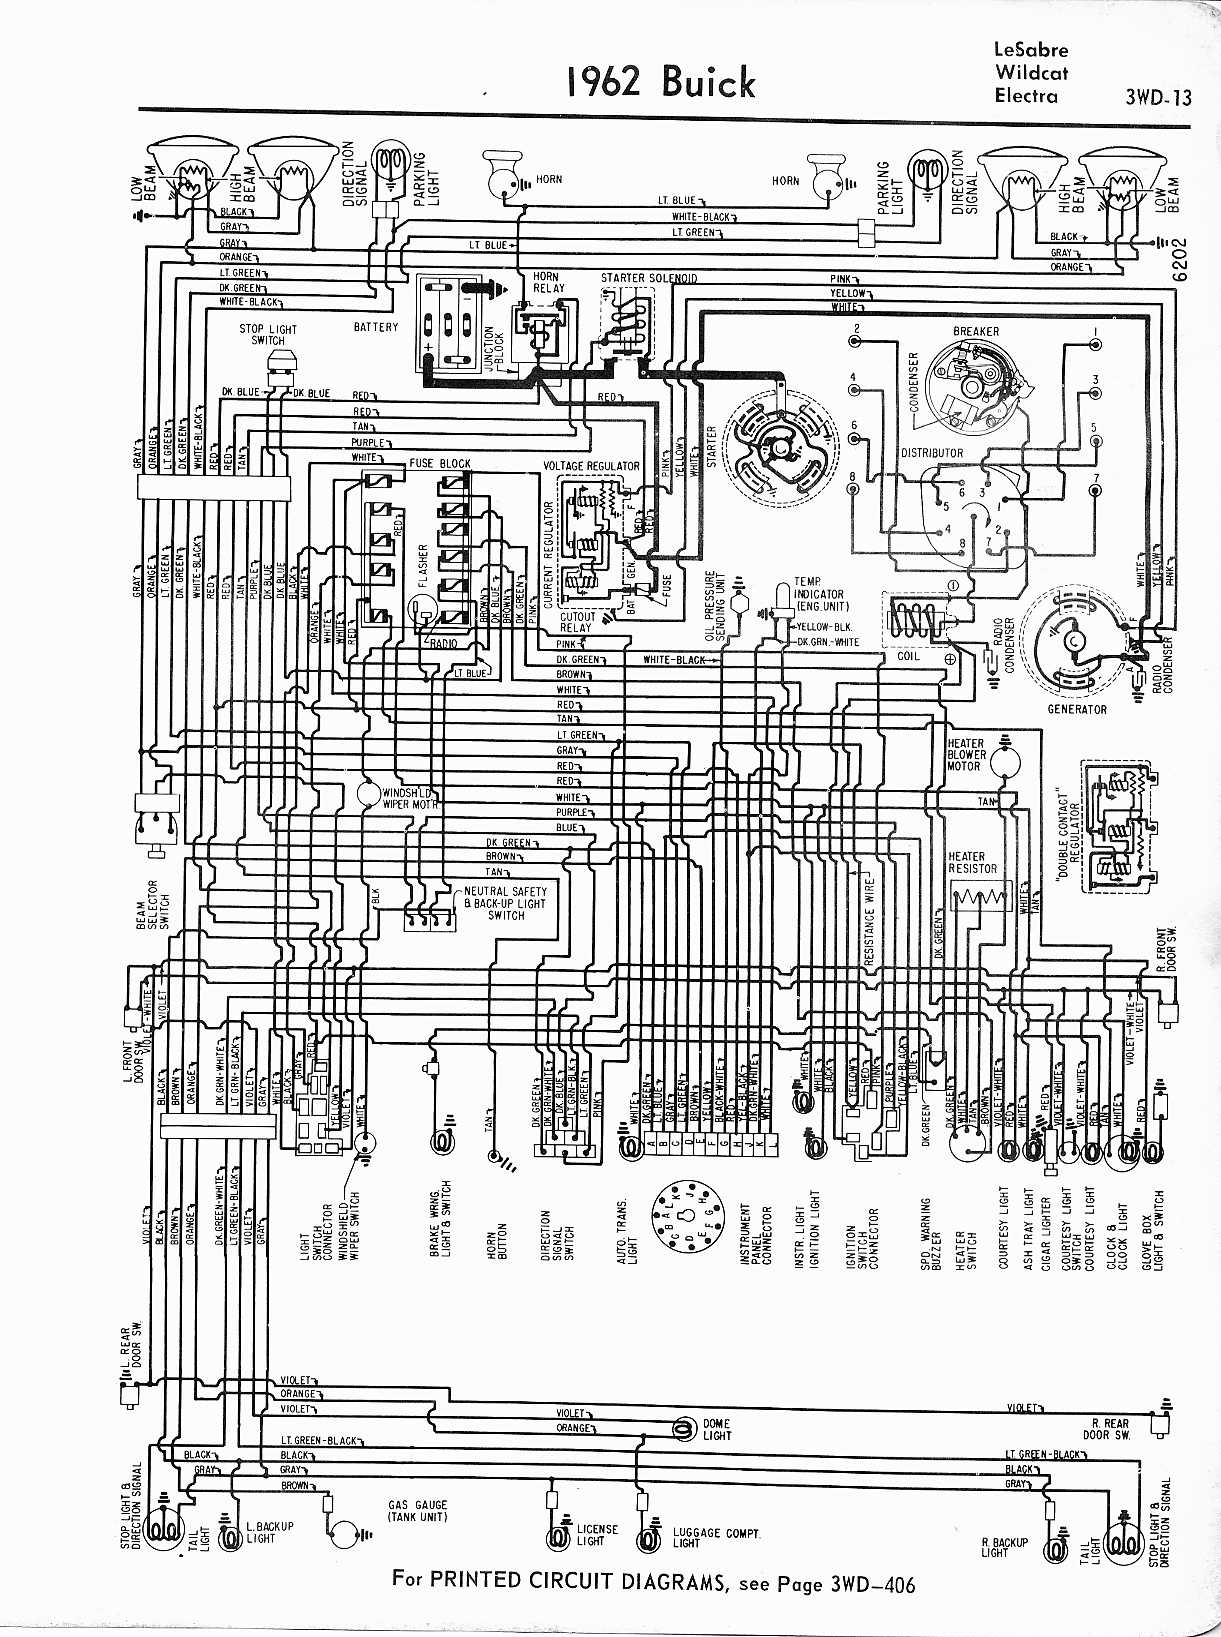 1973 Buick Lesabre Fuse Box Worksheet And Wiring Diagram Century 1967 Electra Diagrams Rh Casamario De 2003